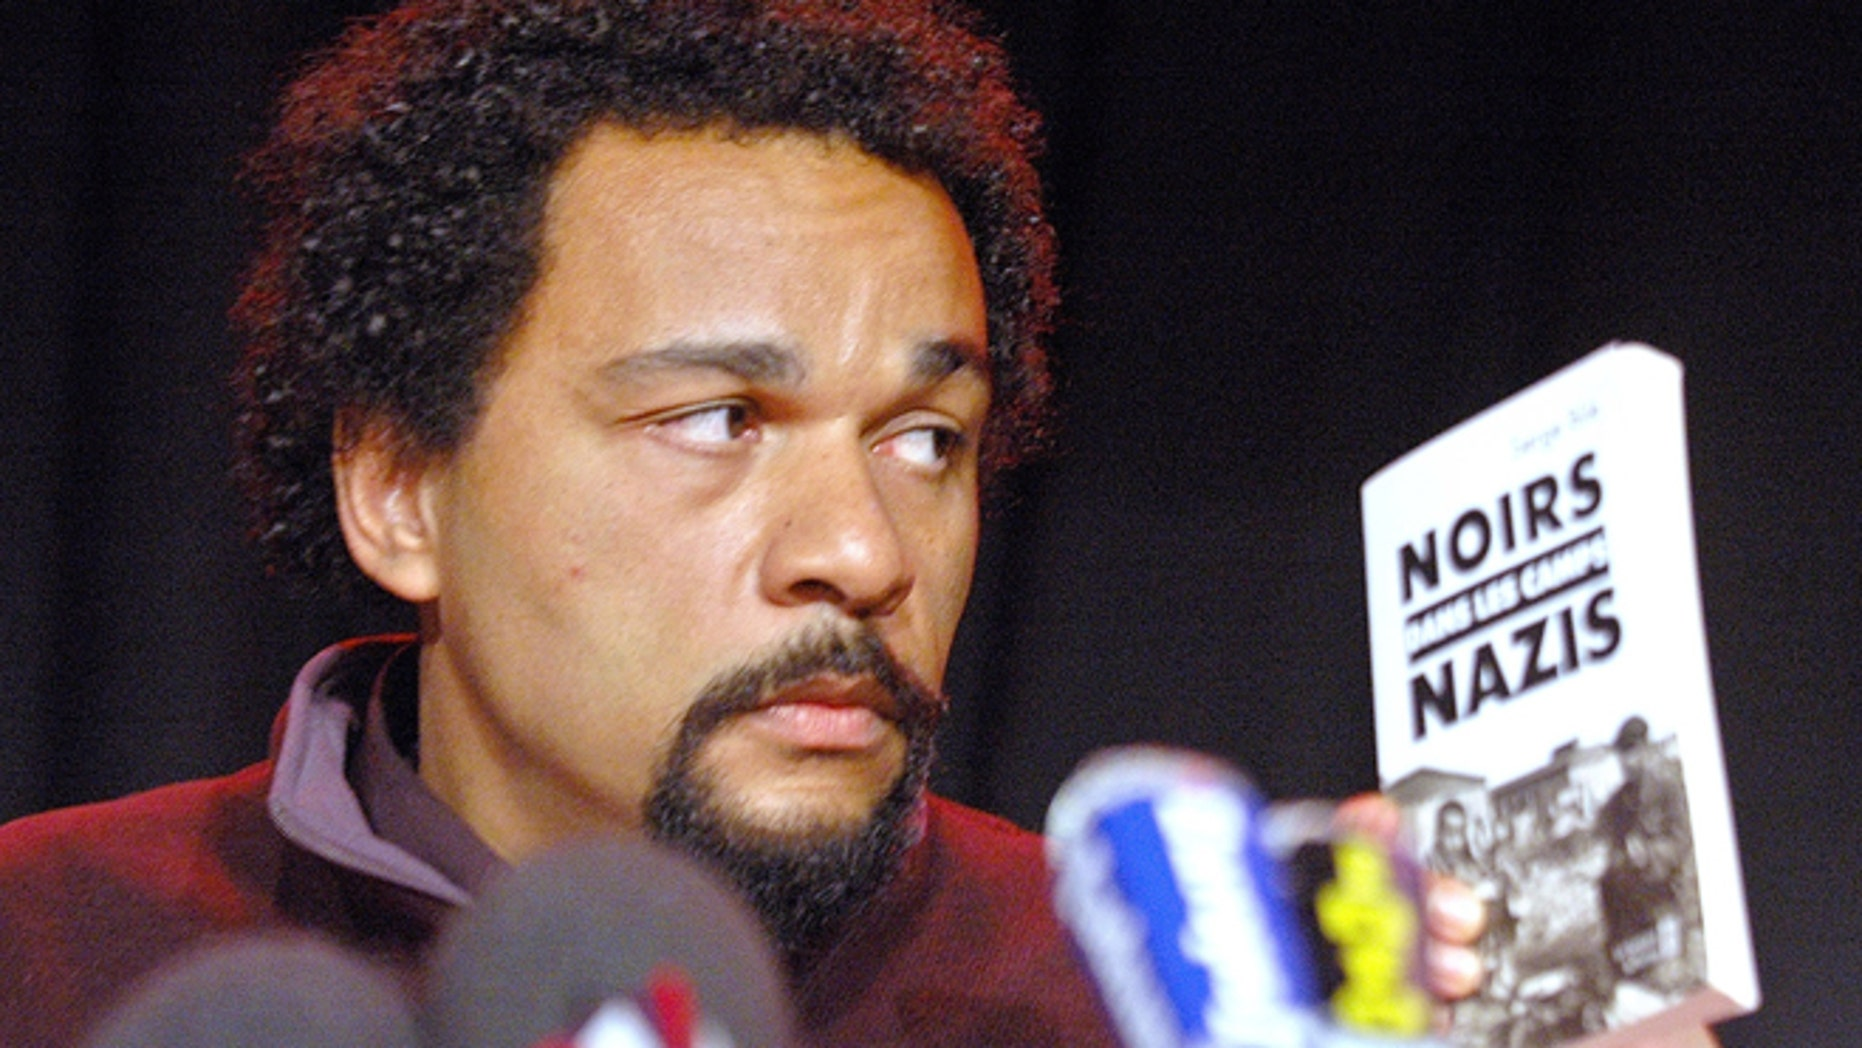 "Feb. 19, 2005: French comic Dieudonne M'Bala M'Bala looks at a book ""Blacks in the Nazi camps"" by Serge Bile during a statement at La Main d'Or theater, in Paris."